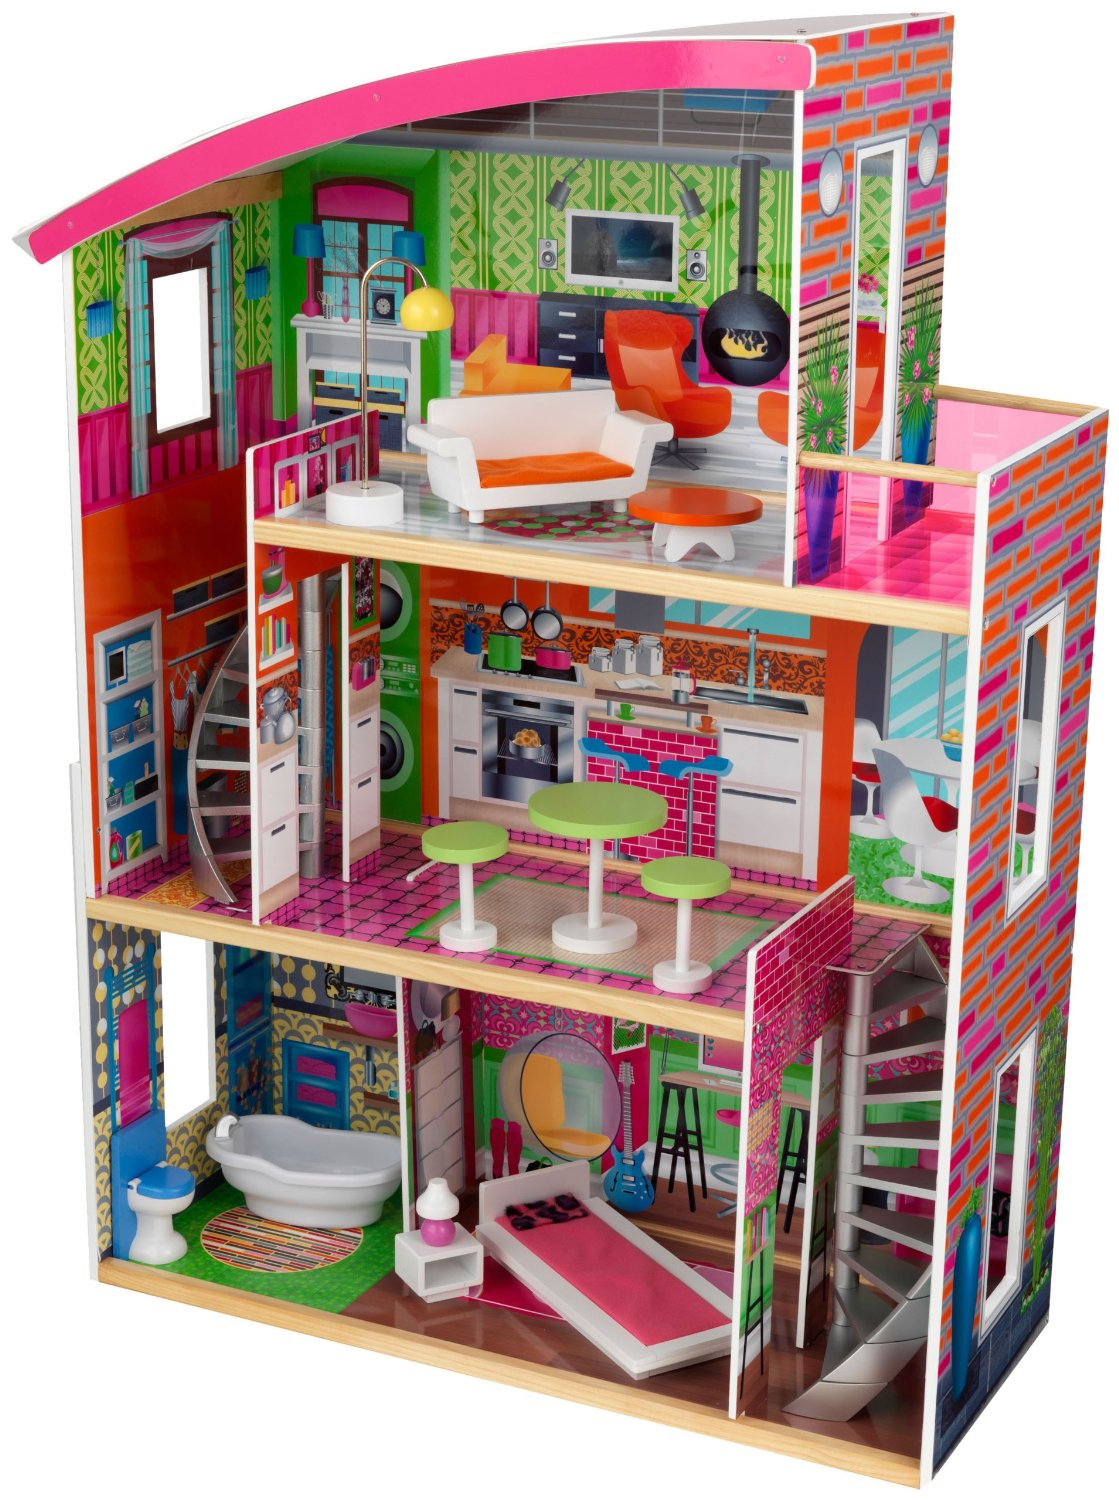 Kidkraft designer dollhouse 2013 holiday gift idea for Couture house